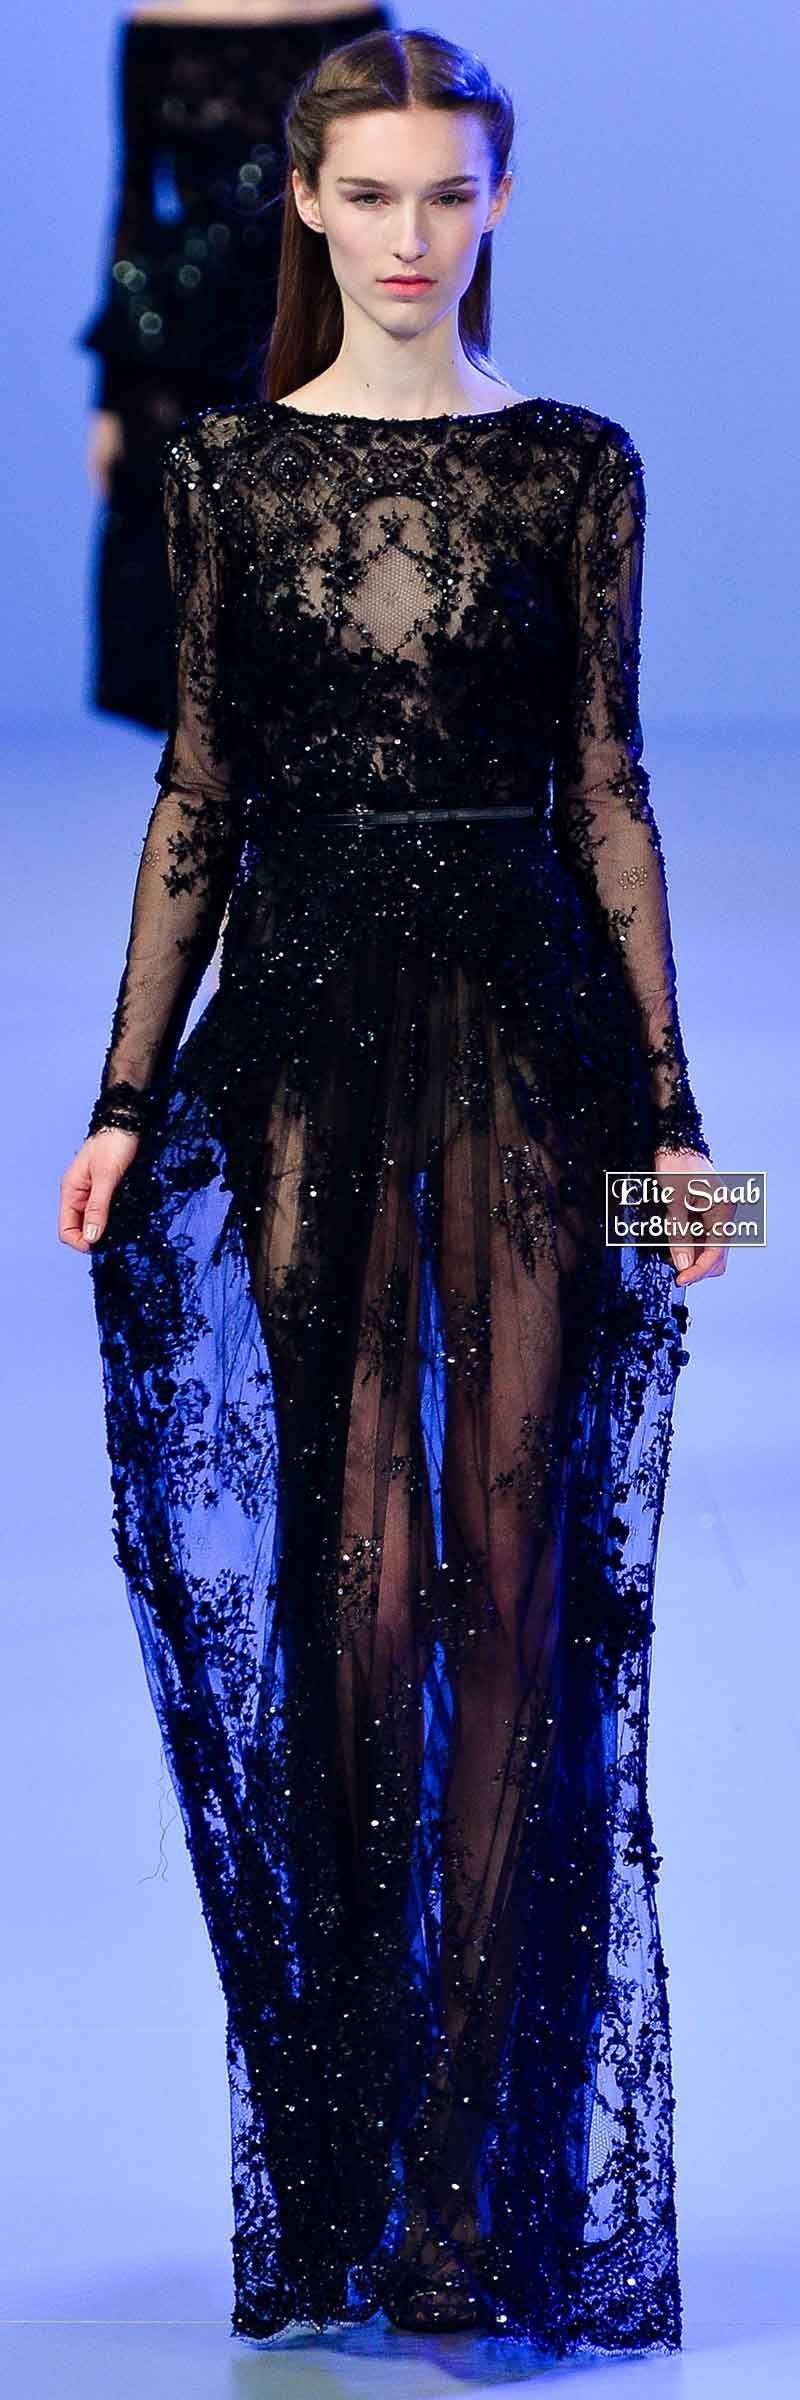 This is the dress I want to die in. So incredibly dark and regal. Elie Saab Spring 2014 Couture Collection. Love this!